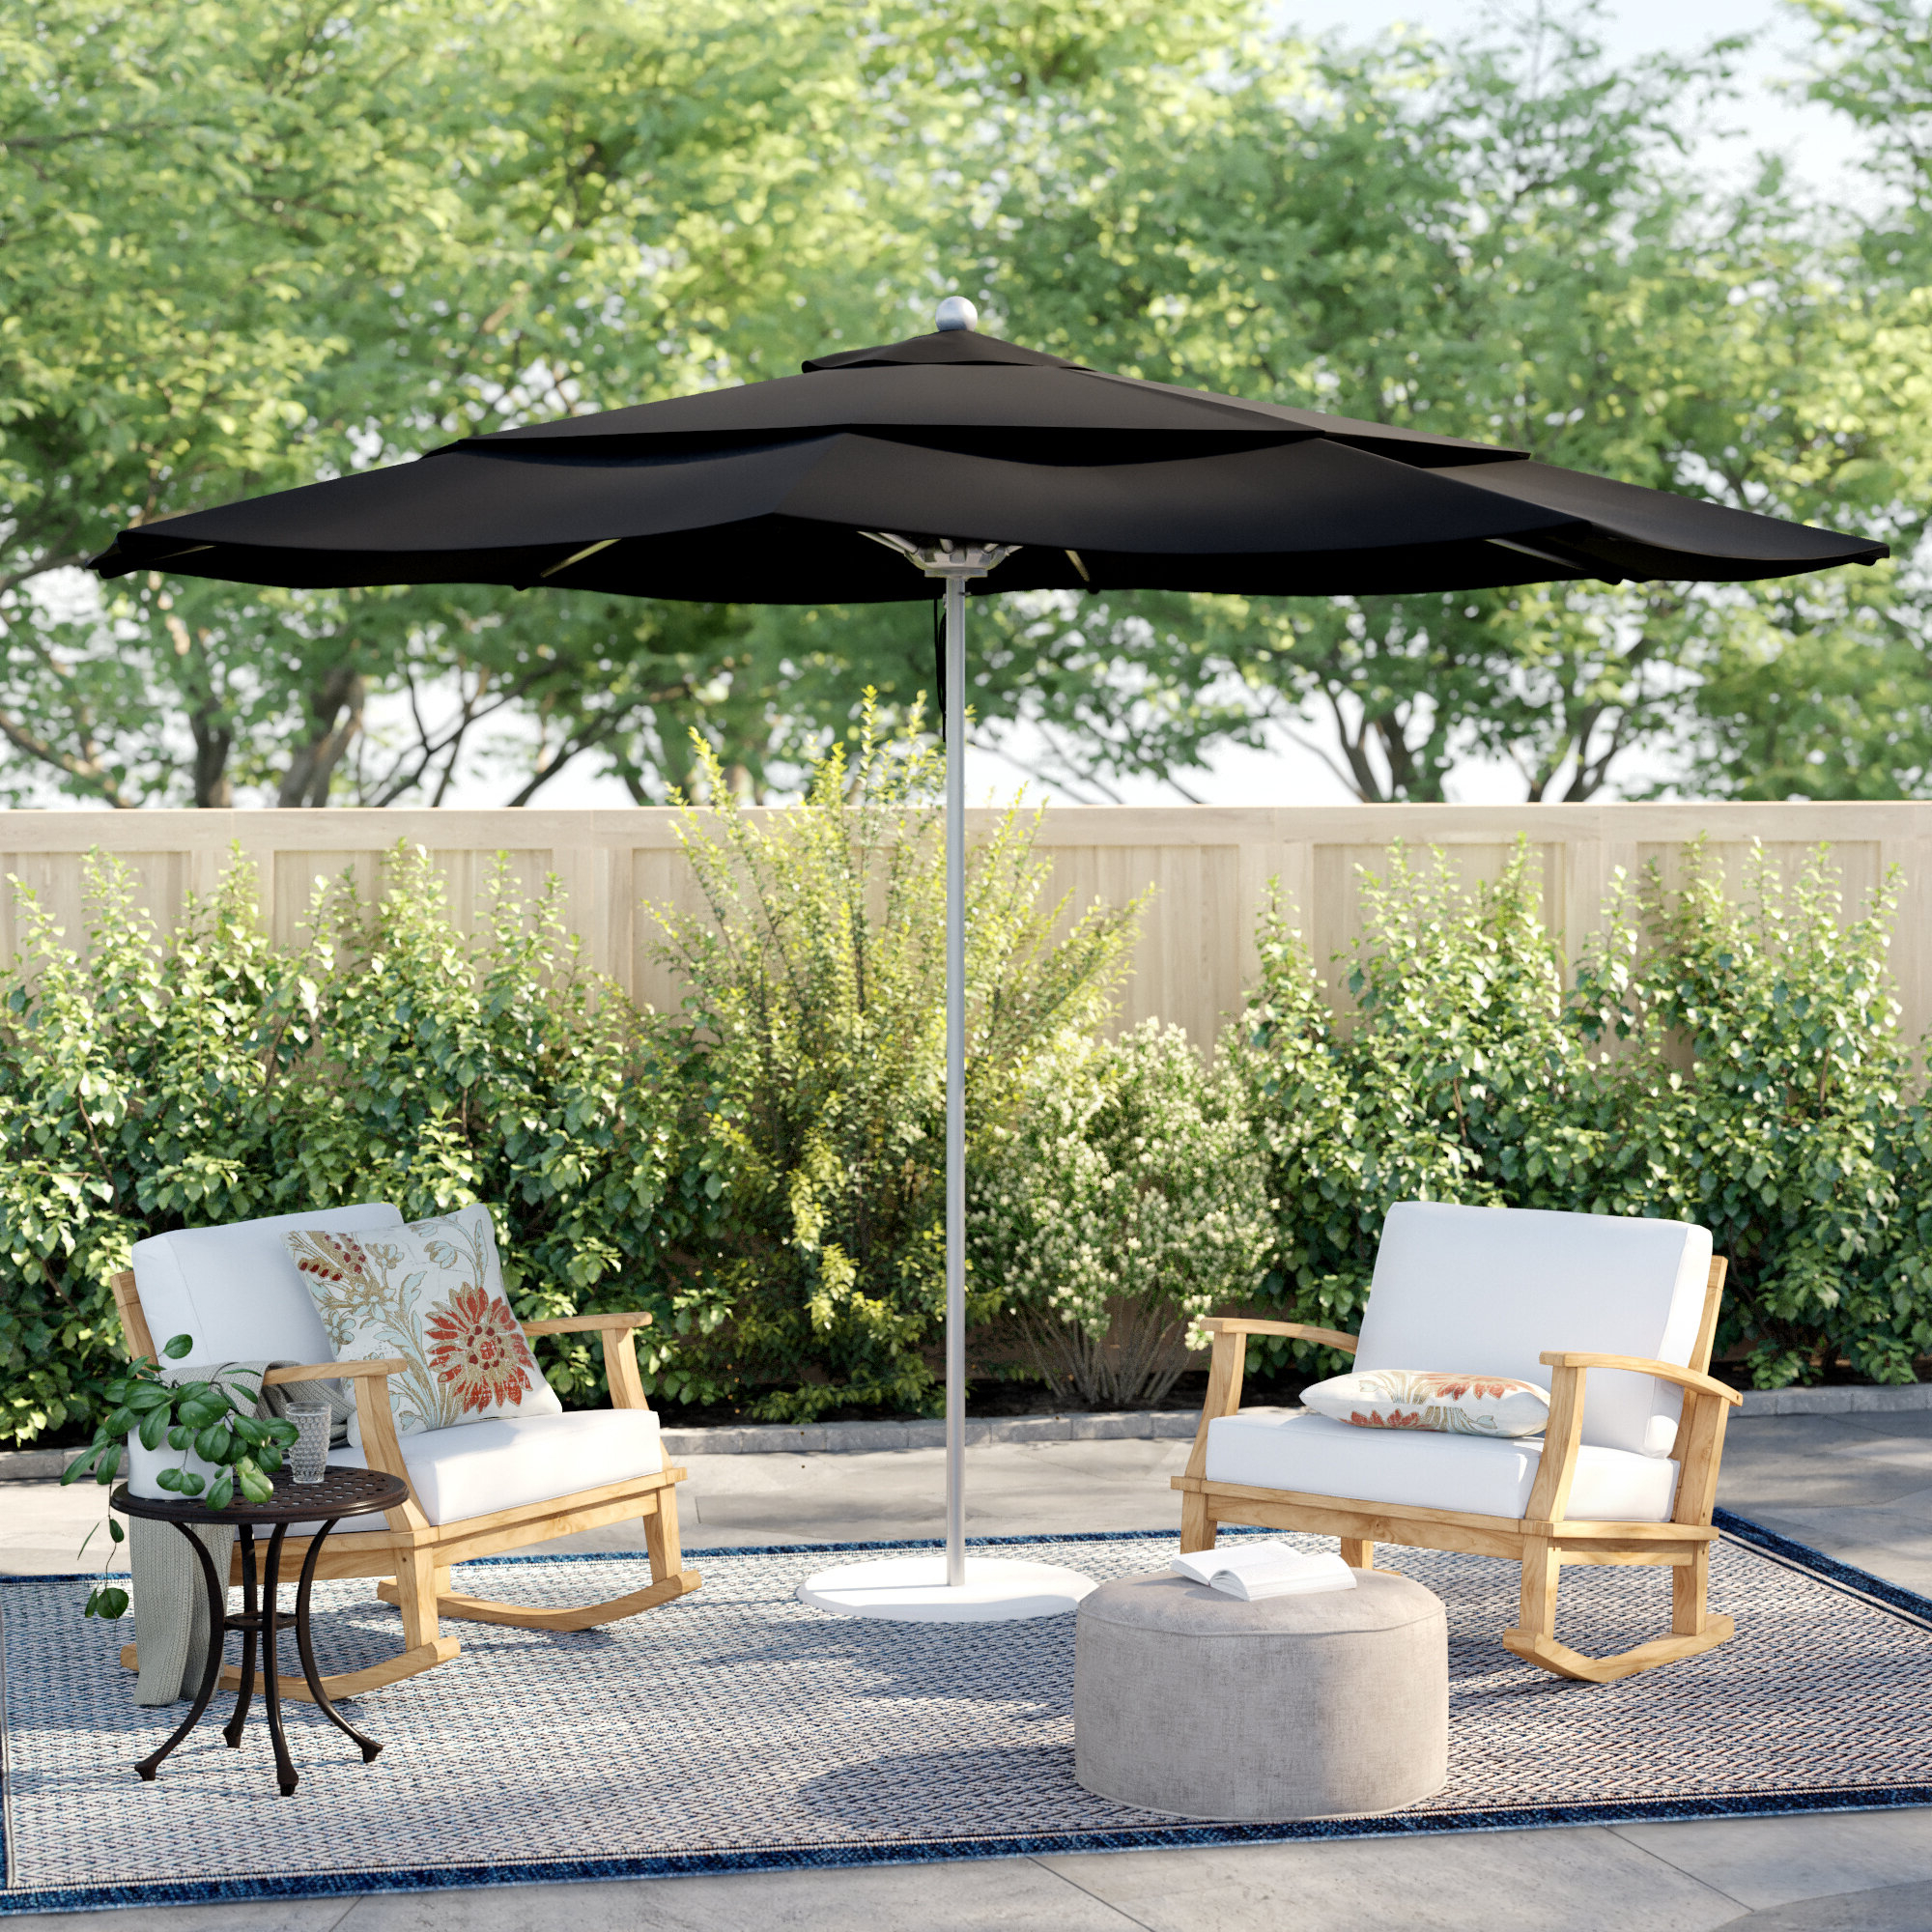 Most Recently Released Alexander Elastic Rectangular Market Sunbrella Umbrellas Regarding Caravelle 11' Market Sunbrella Umbrella (View 7 of 20)